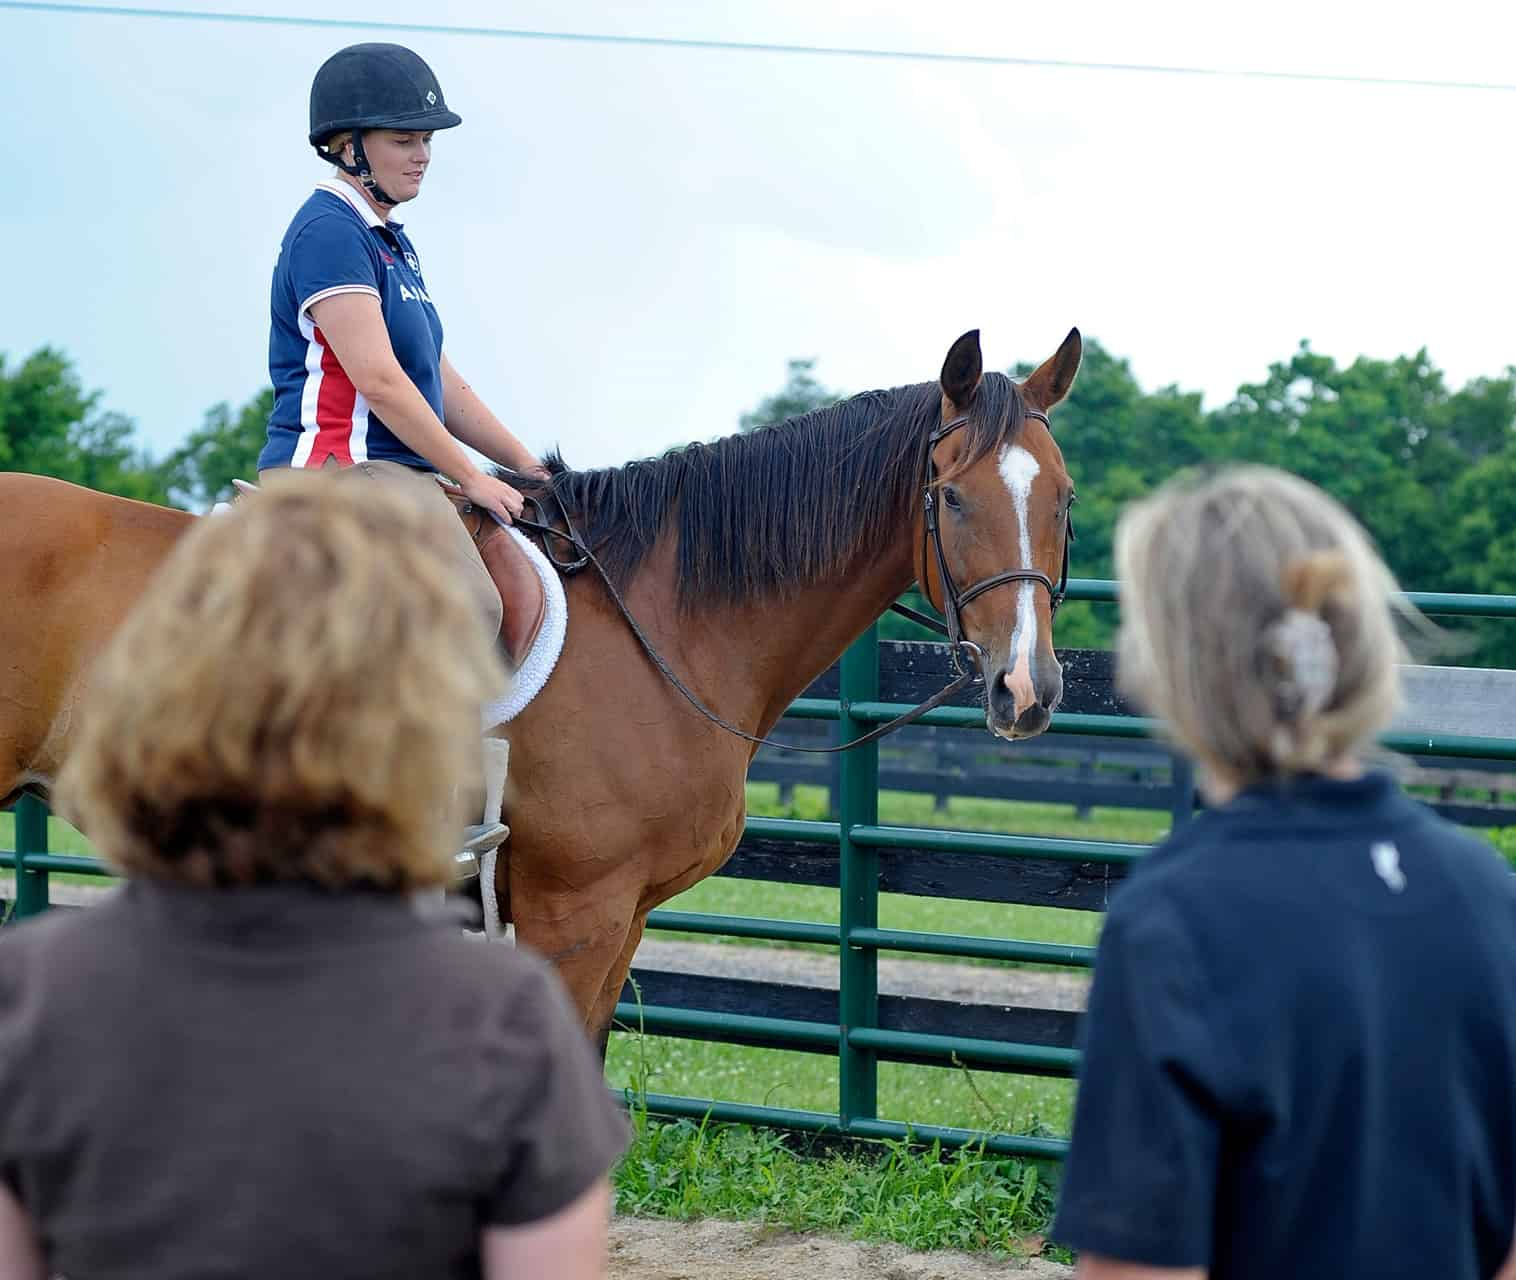 How Much Weight Can Horses Comfortably Carry?